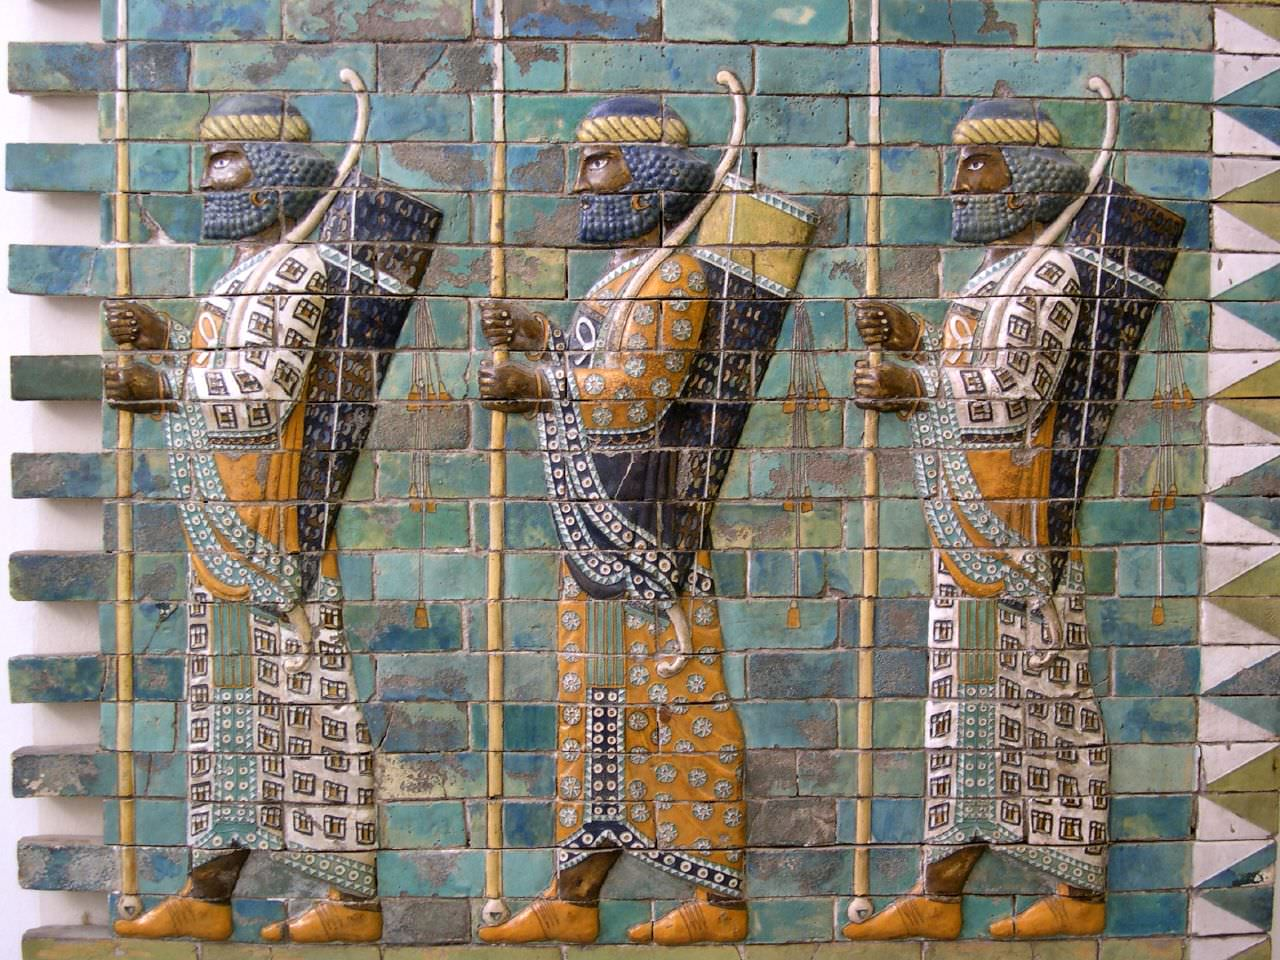 Need help with ancient persian society?